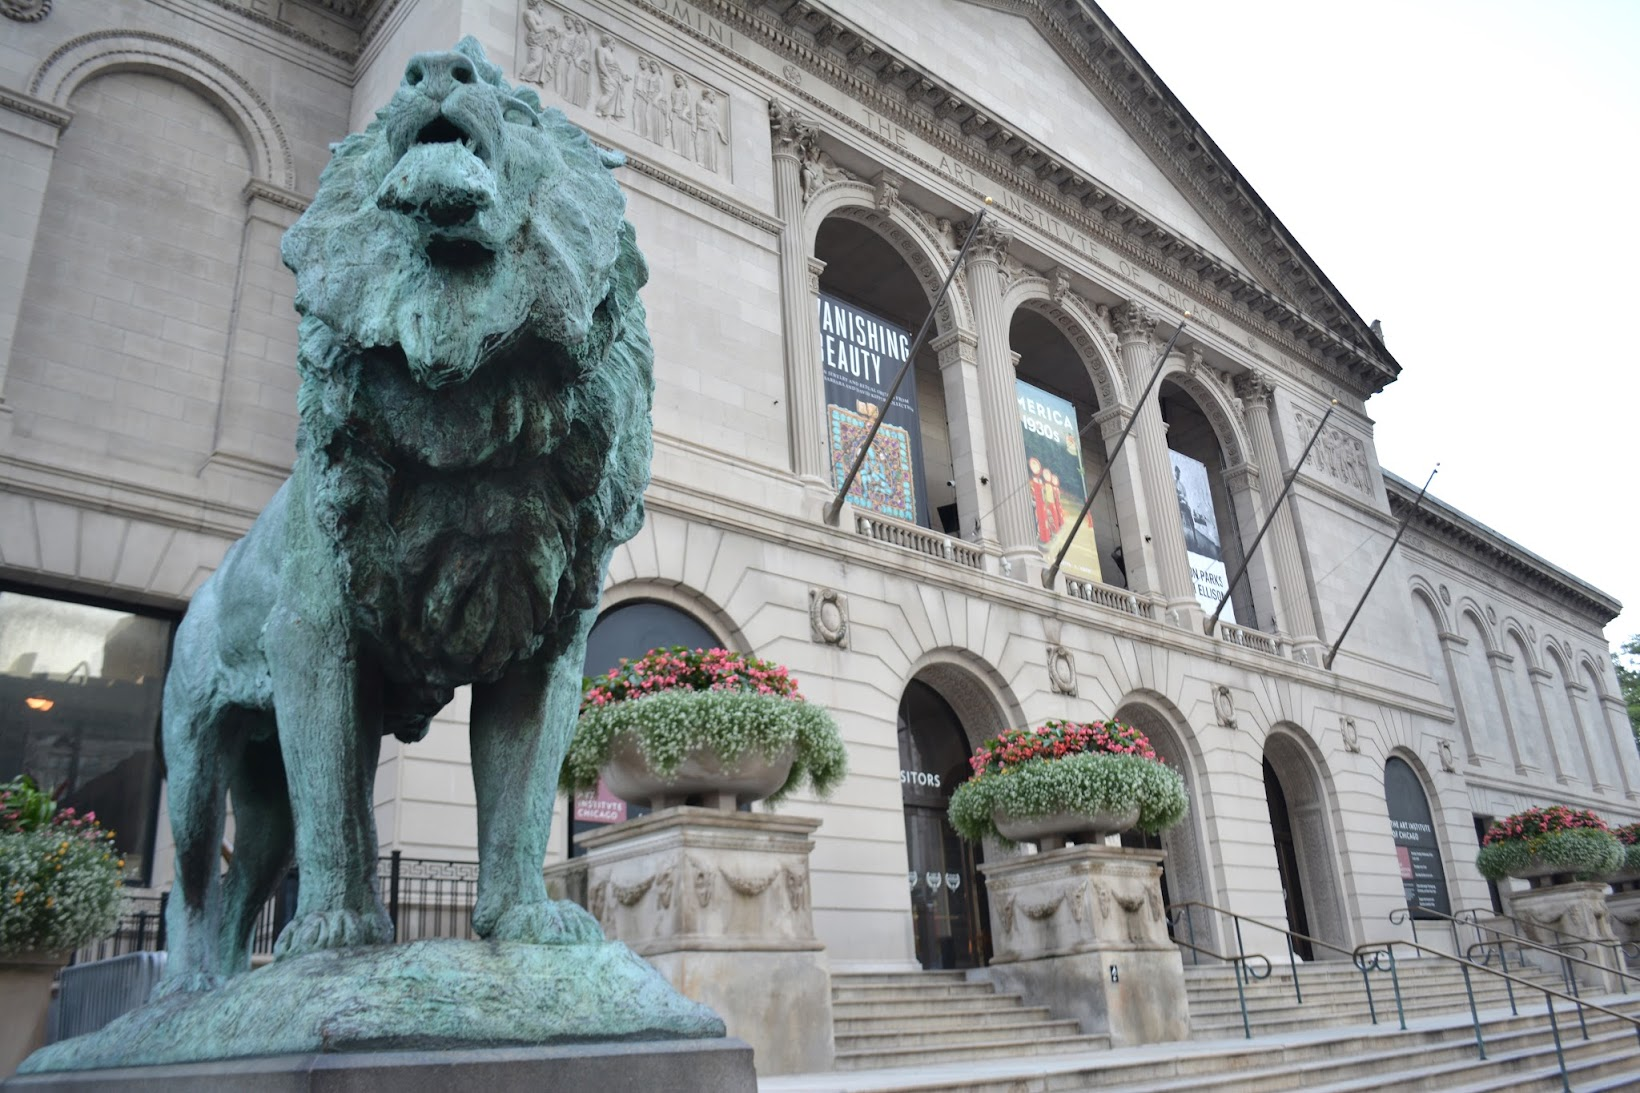 The Chicago Art Institute, Chicago art scene